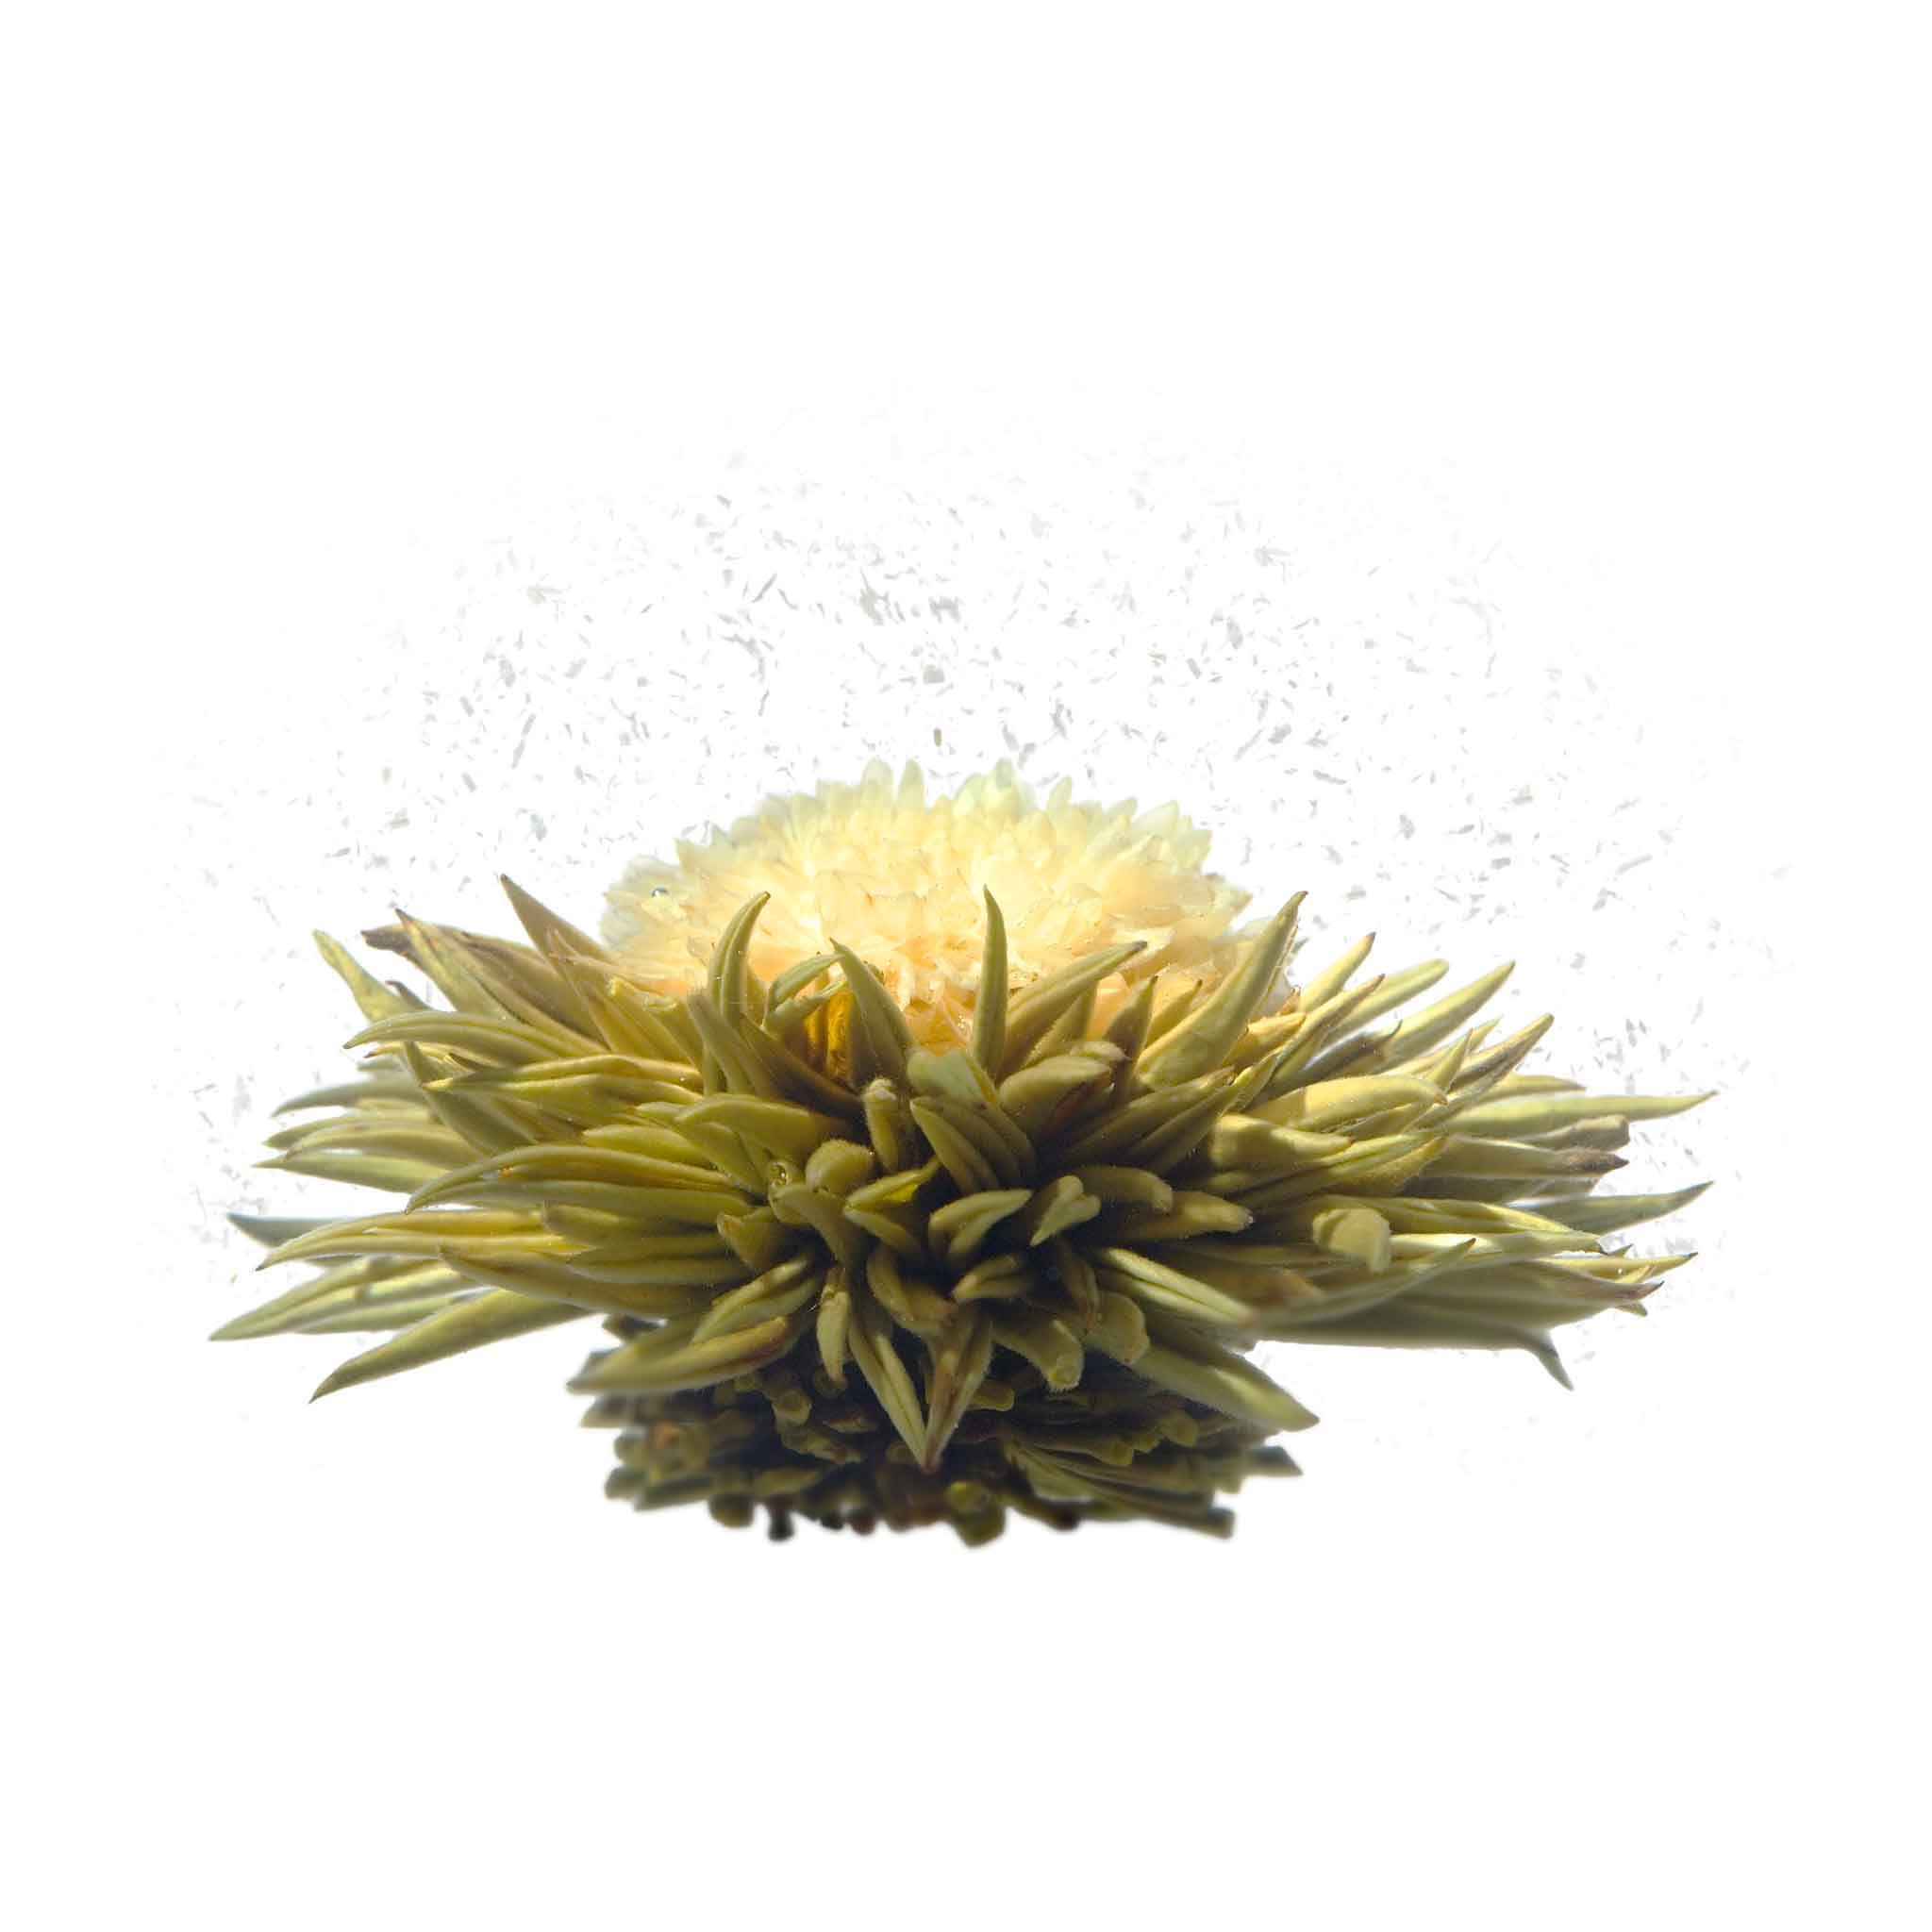 Posy blooming teas teaposy teaposy let it snow blooming tea with chrysanthemum flower and coconut flakes mightylinksfo